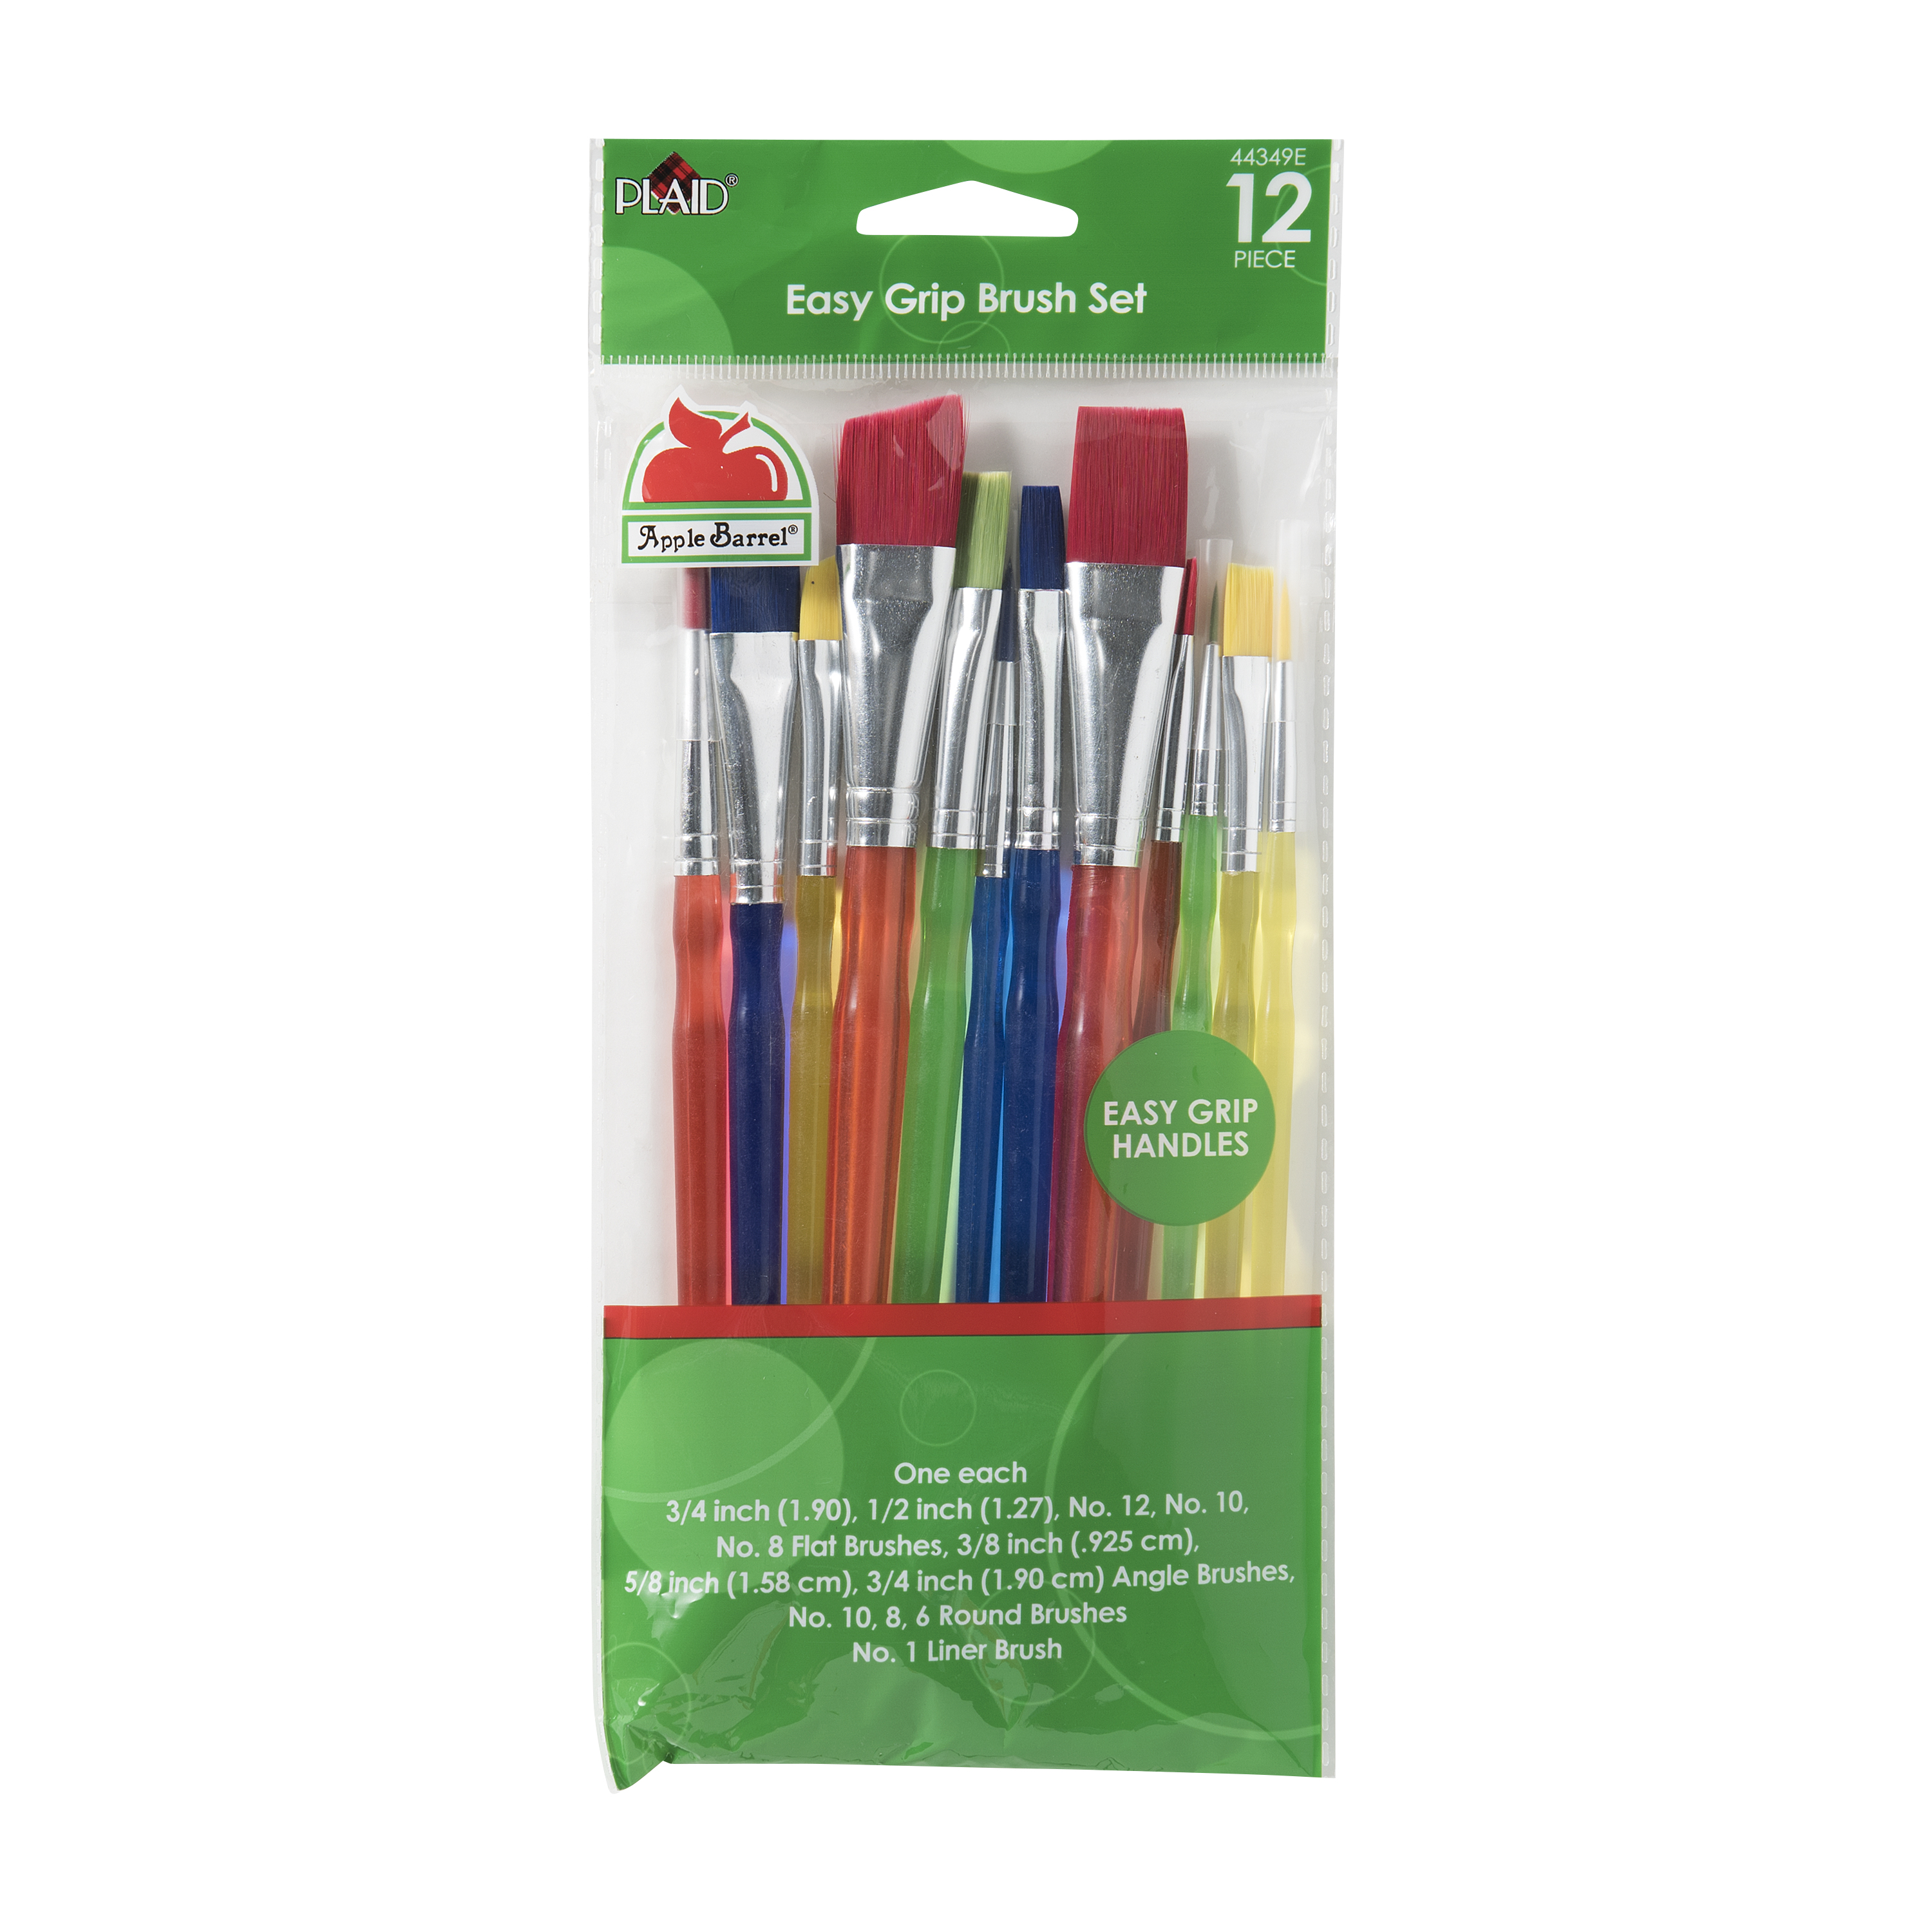 Apple Barrel 12Pc Assorted Brush Set